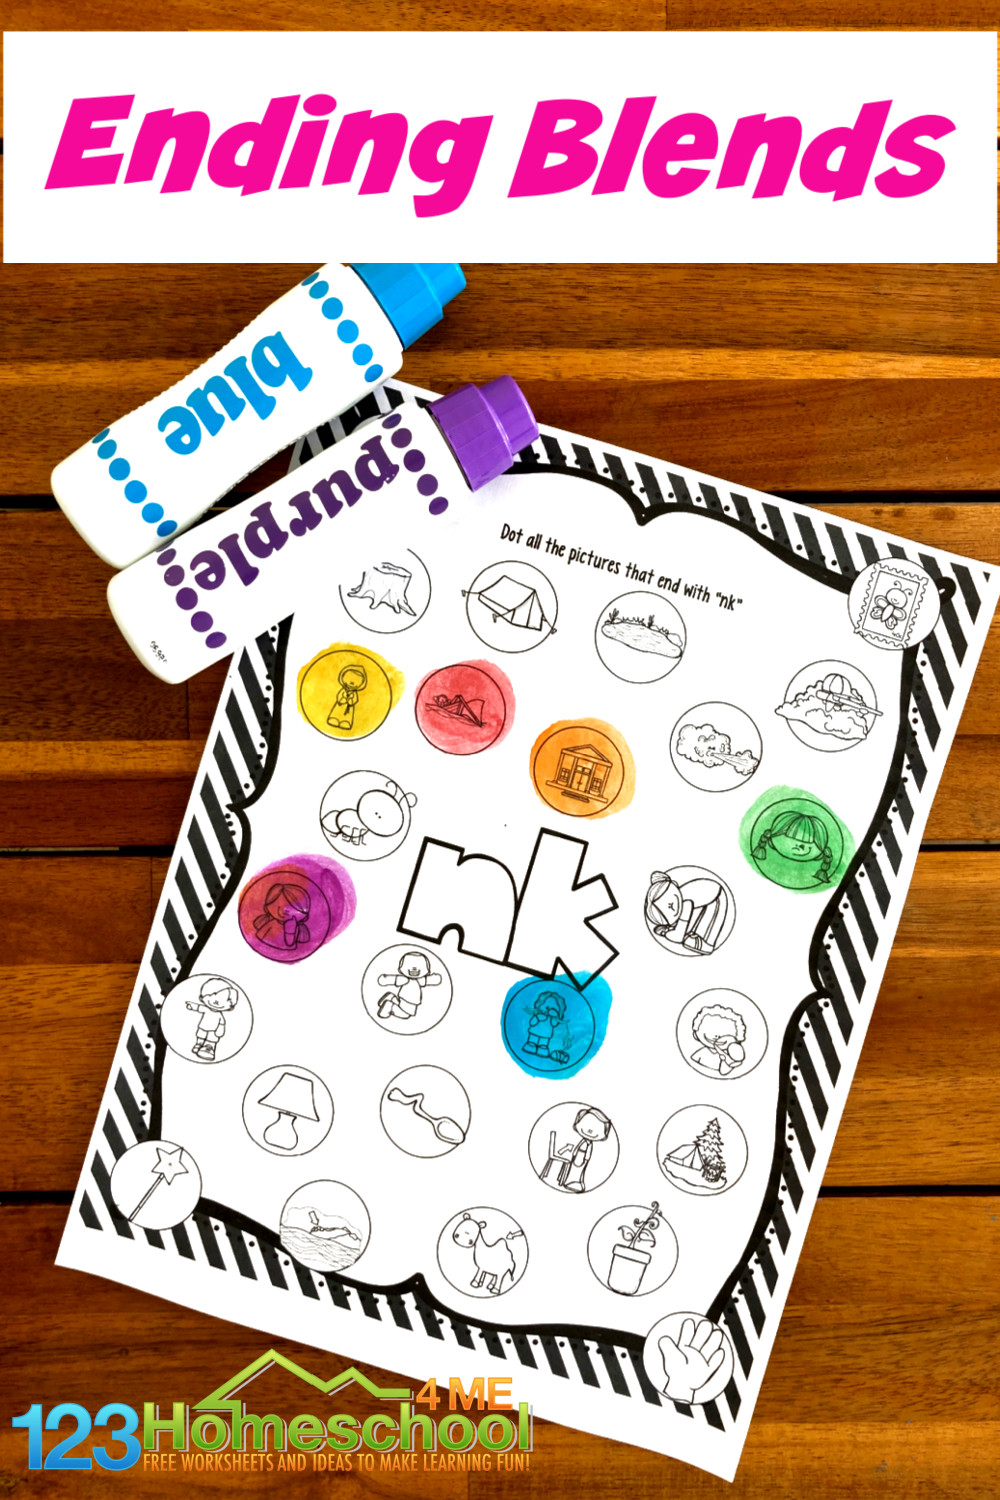 Many times our kiddos need to hear words and play with the sounds before we can expect them to read them. These free printable ending blends worksheets allow children listening to words with N blends before they are expected to read or spell them. Thesefirst grade worksheets us bingo dauber markers to make them extra fun. Simply download pdf fie withdo a dot printablesand you are ready to work on phonics skills with kindergarten, 1st grade, and 2nd grade students.